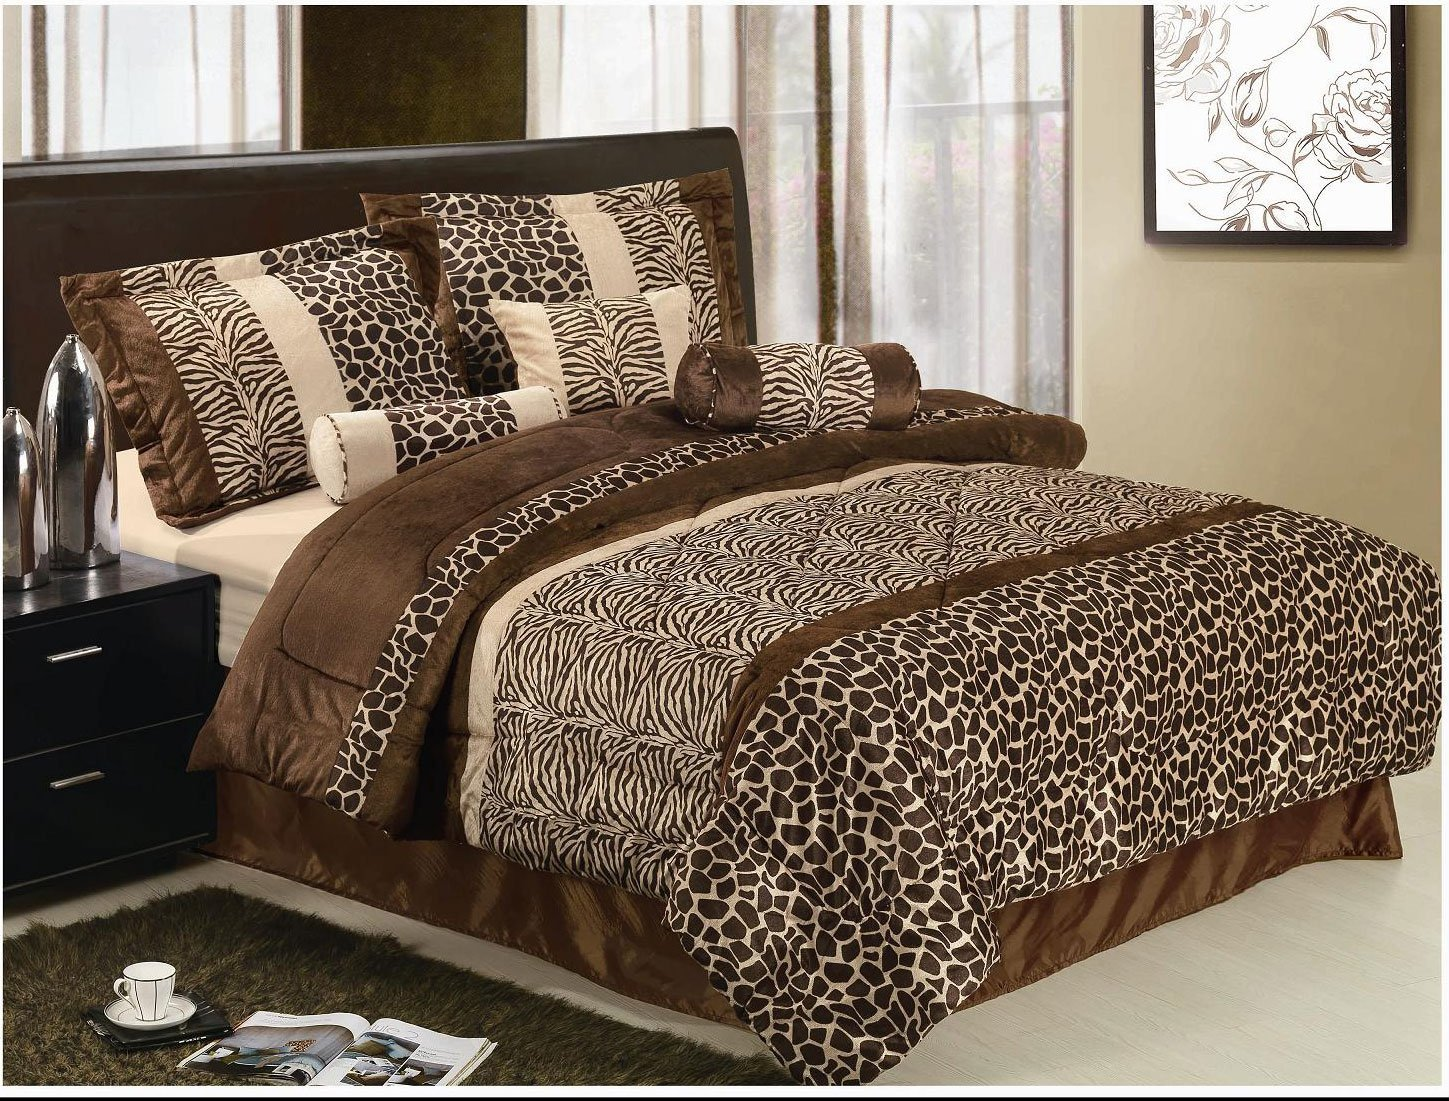 Safari Bedroom Decor Ideas